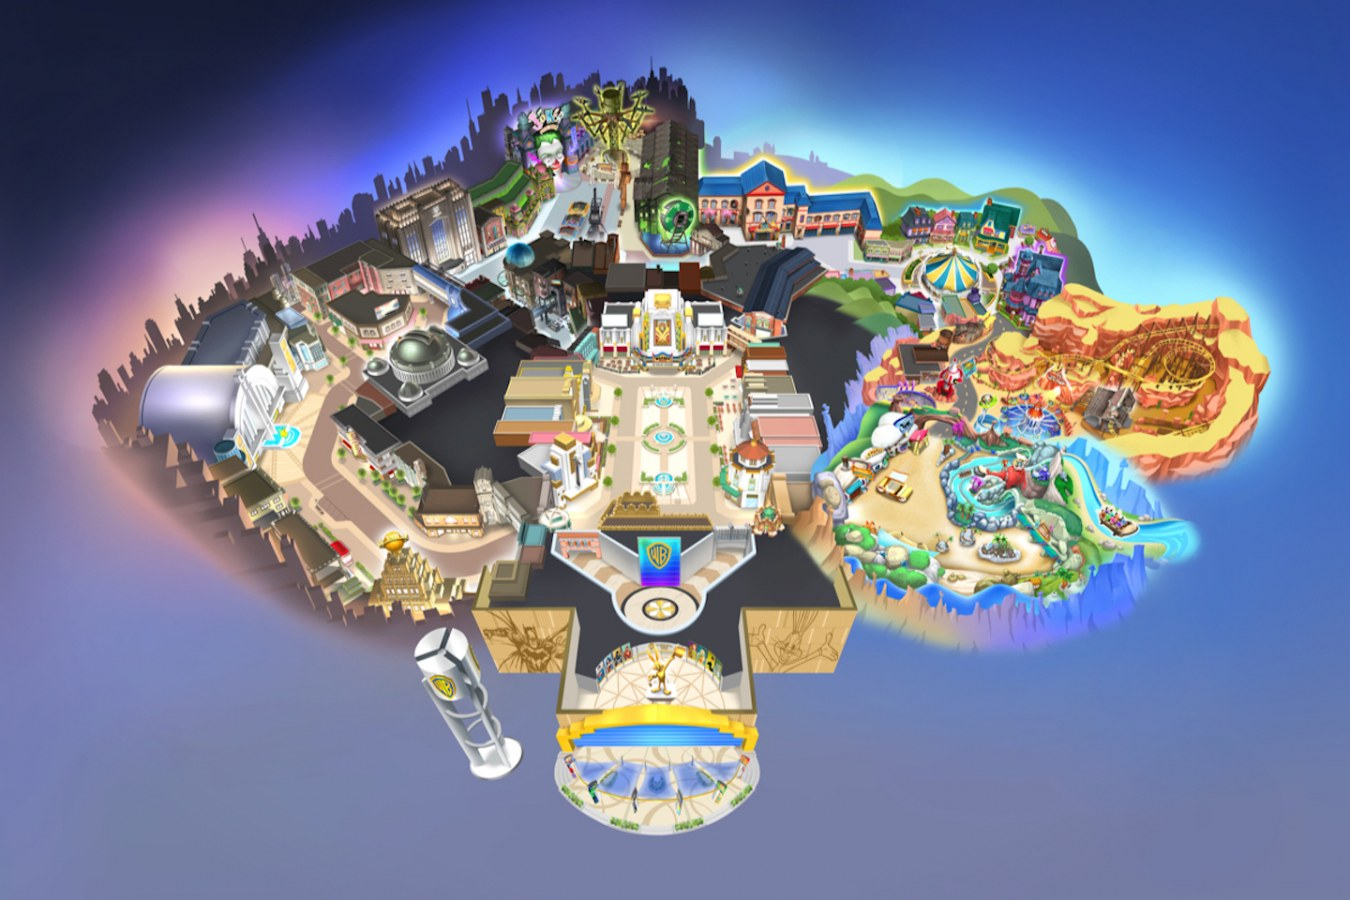 All the lands in Warner Bros World Abu Dhabi